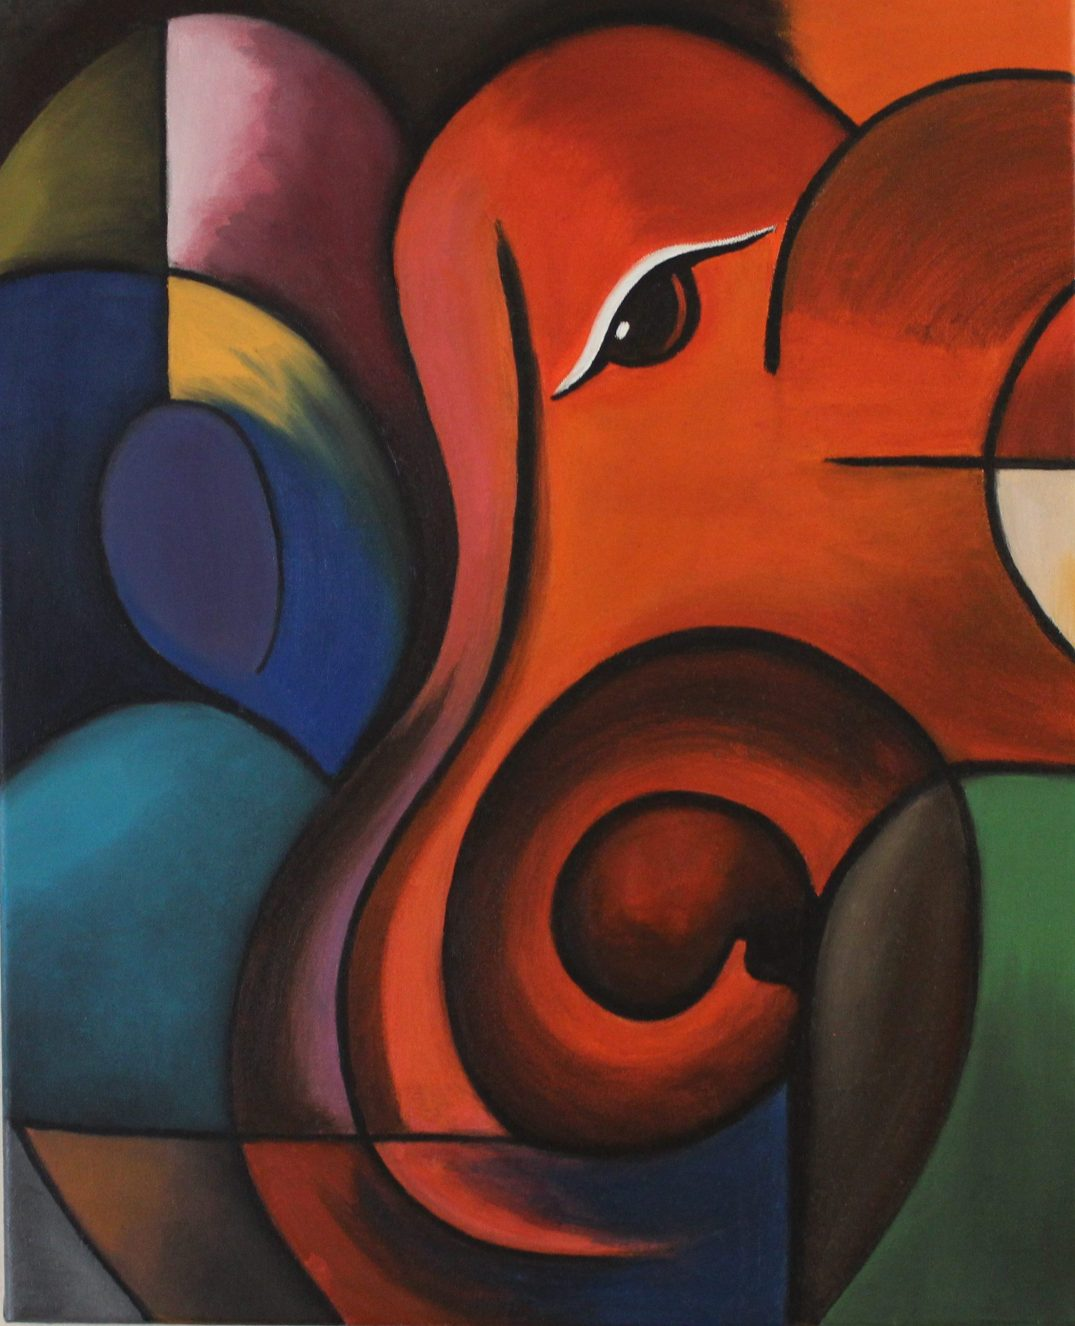 art, ganesha, handmade, indian god, abstract, oil painting, oil on canvas